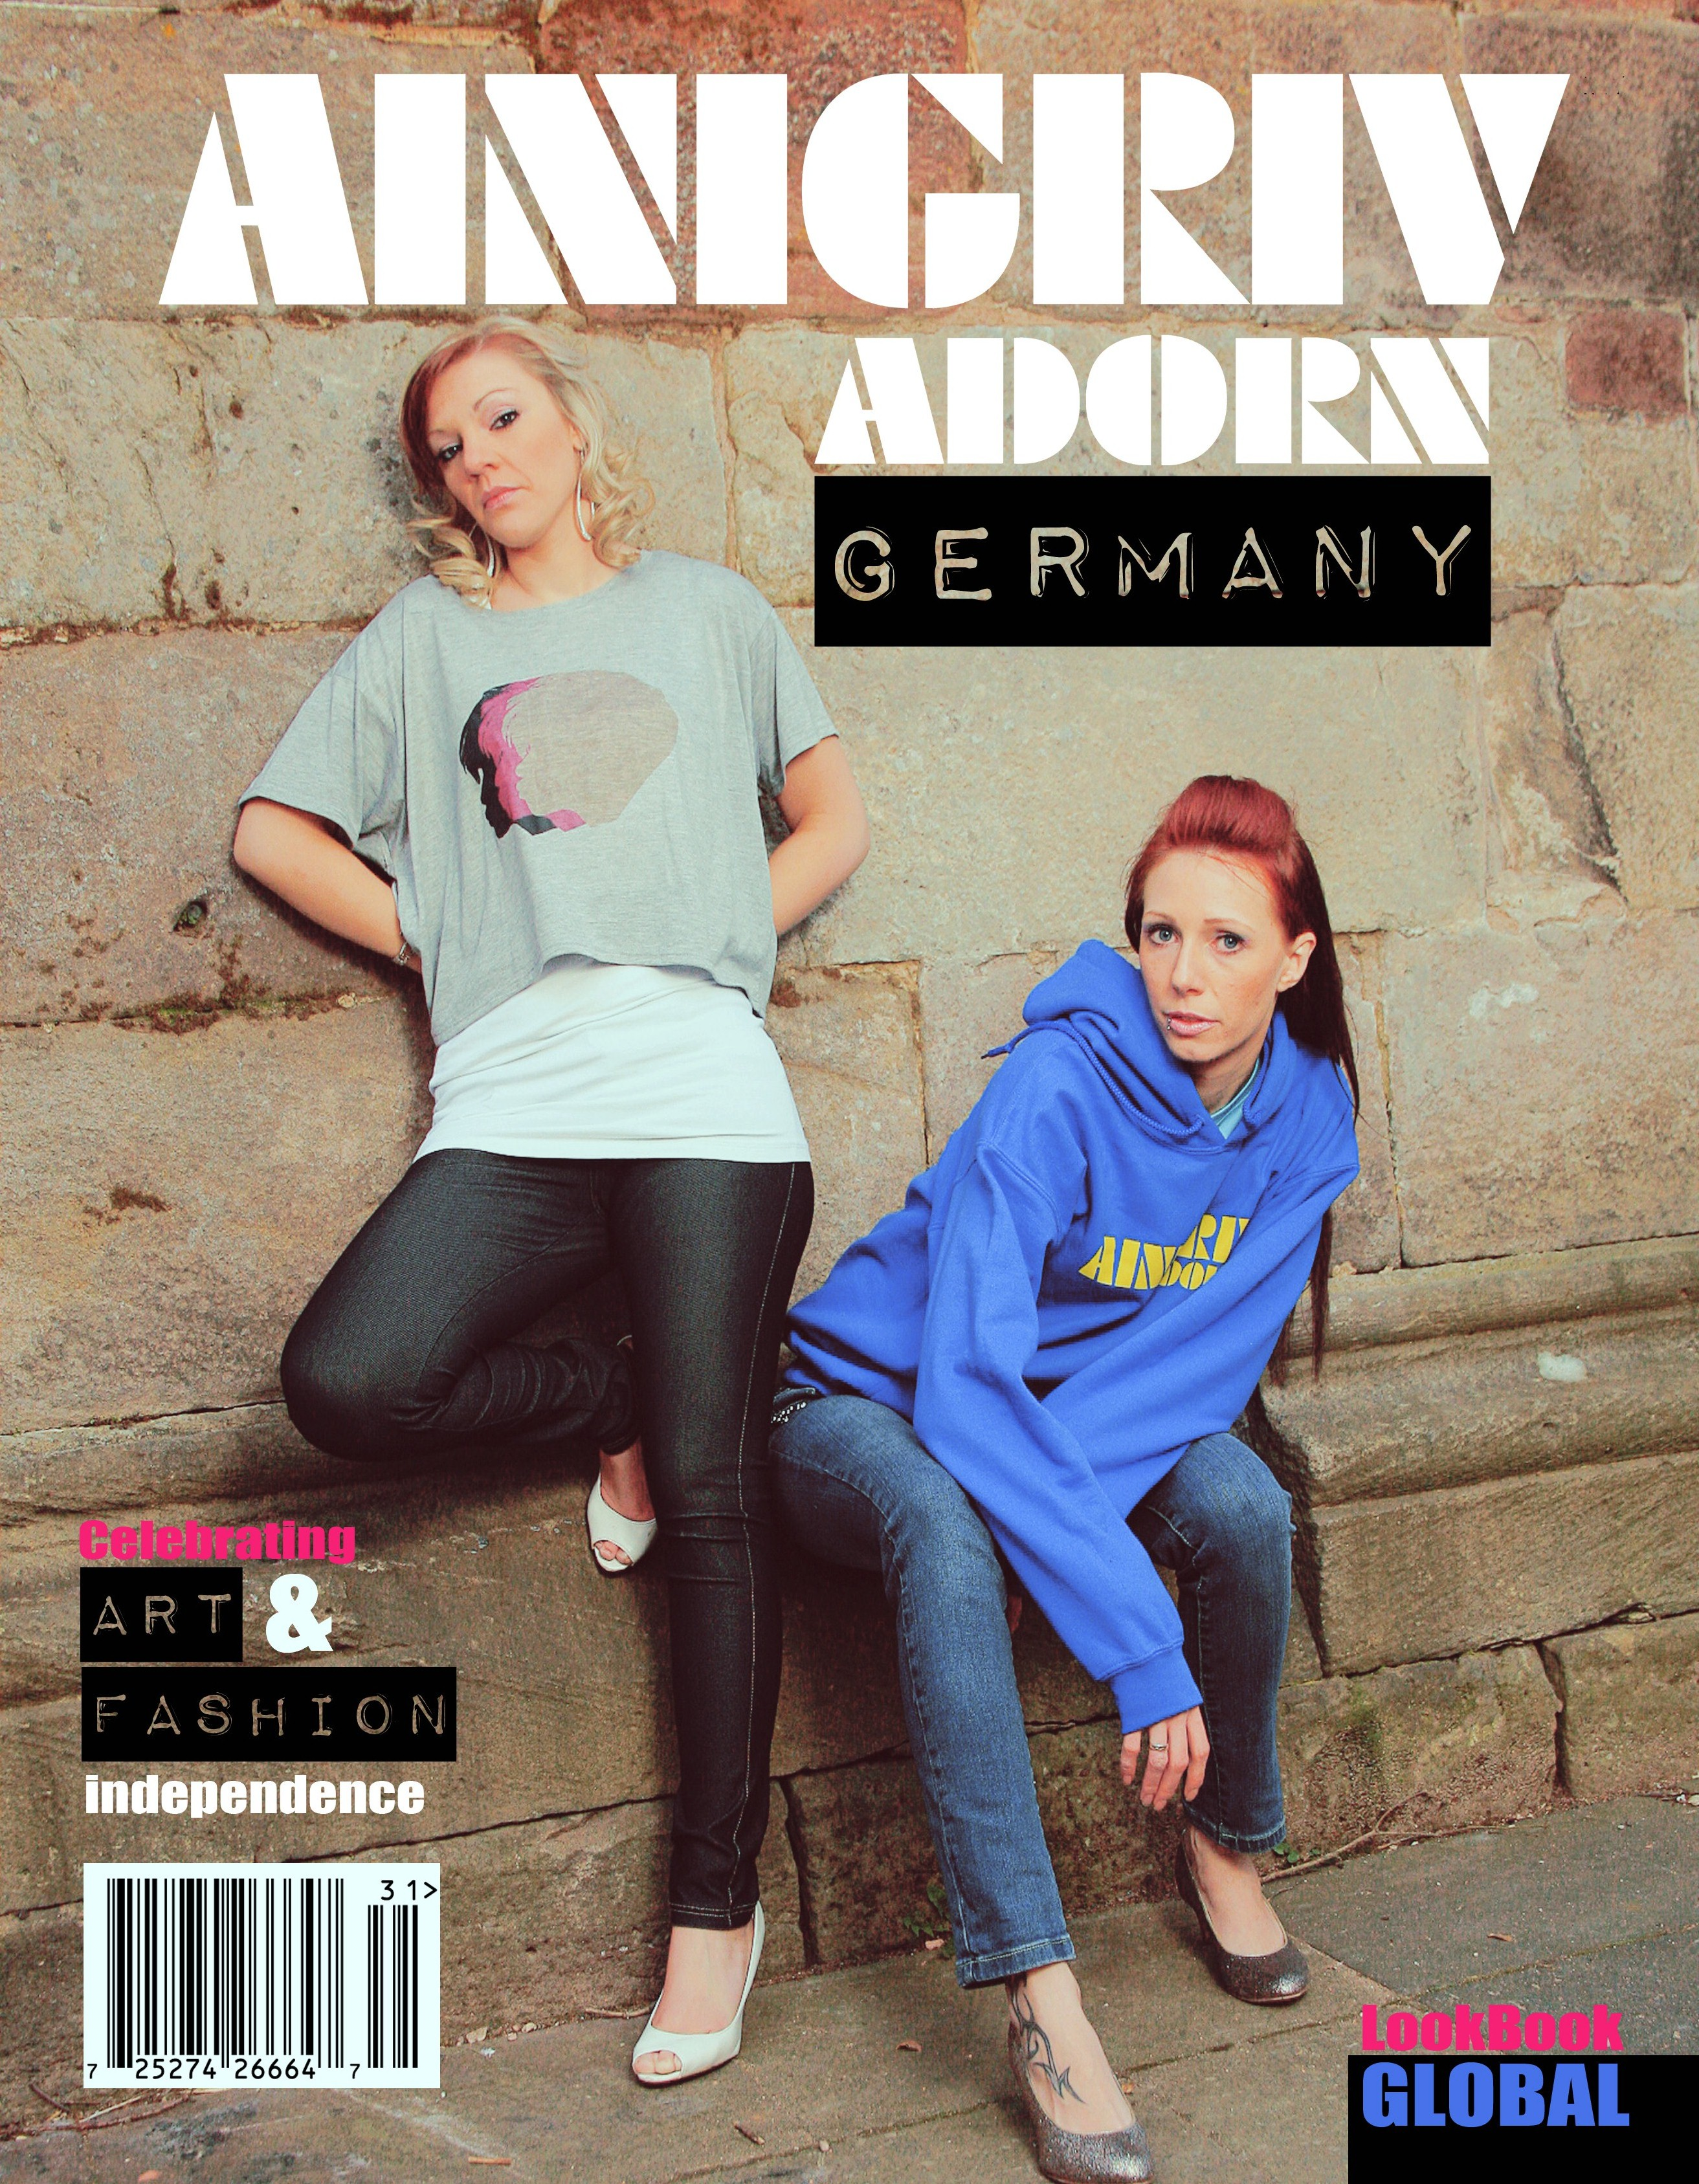 Ainigriv Adorn Look Book 5 Germany